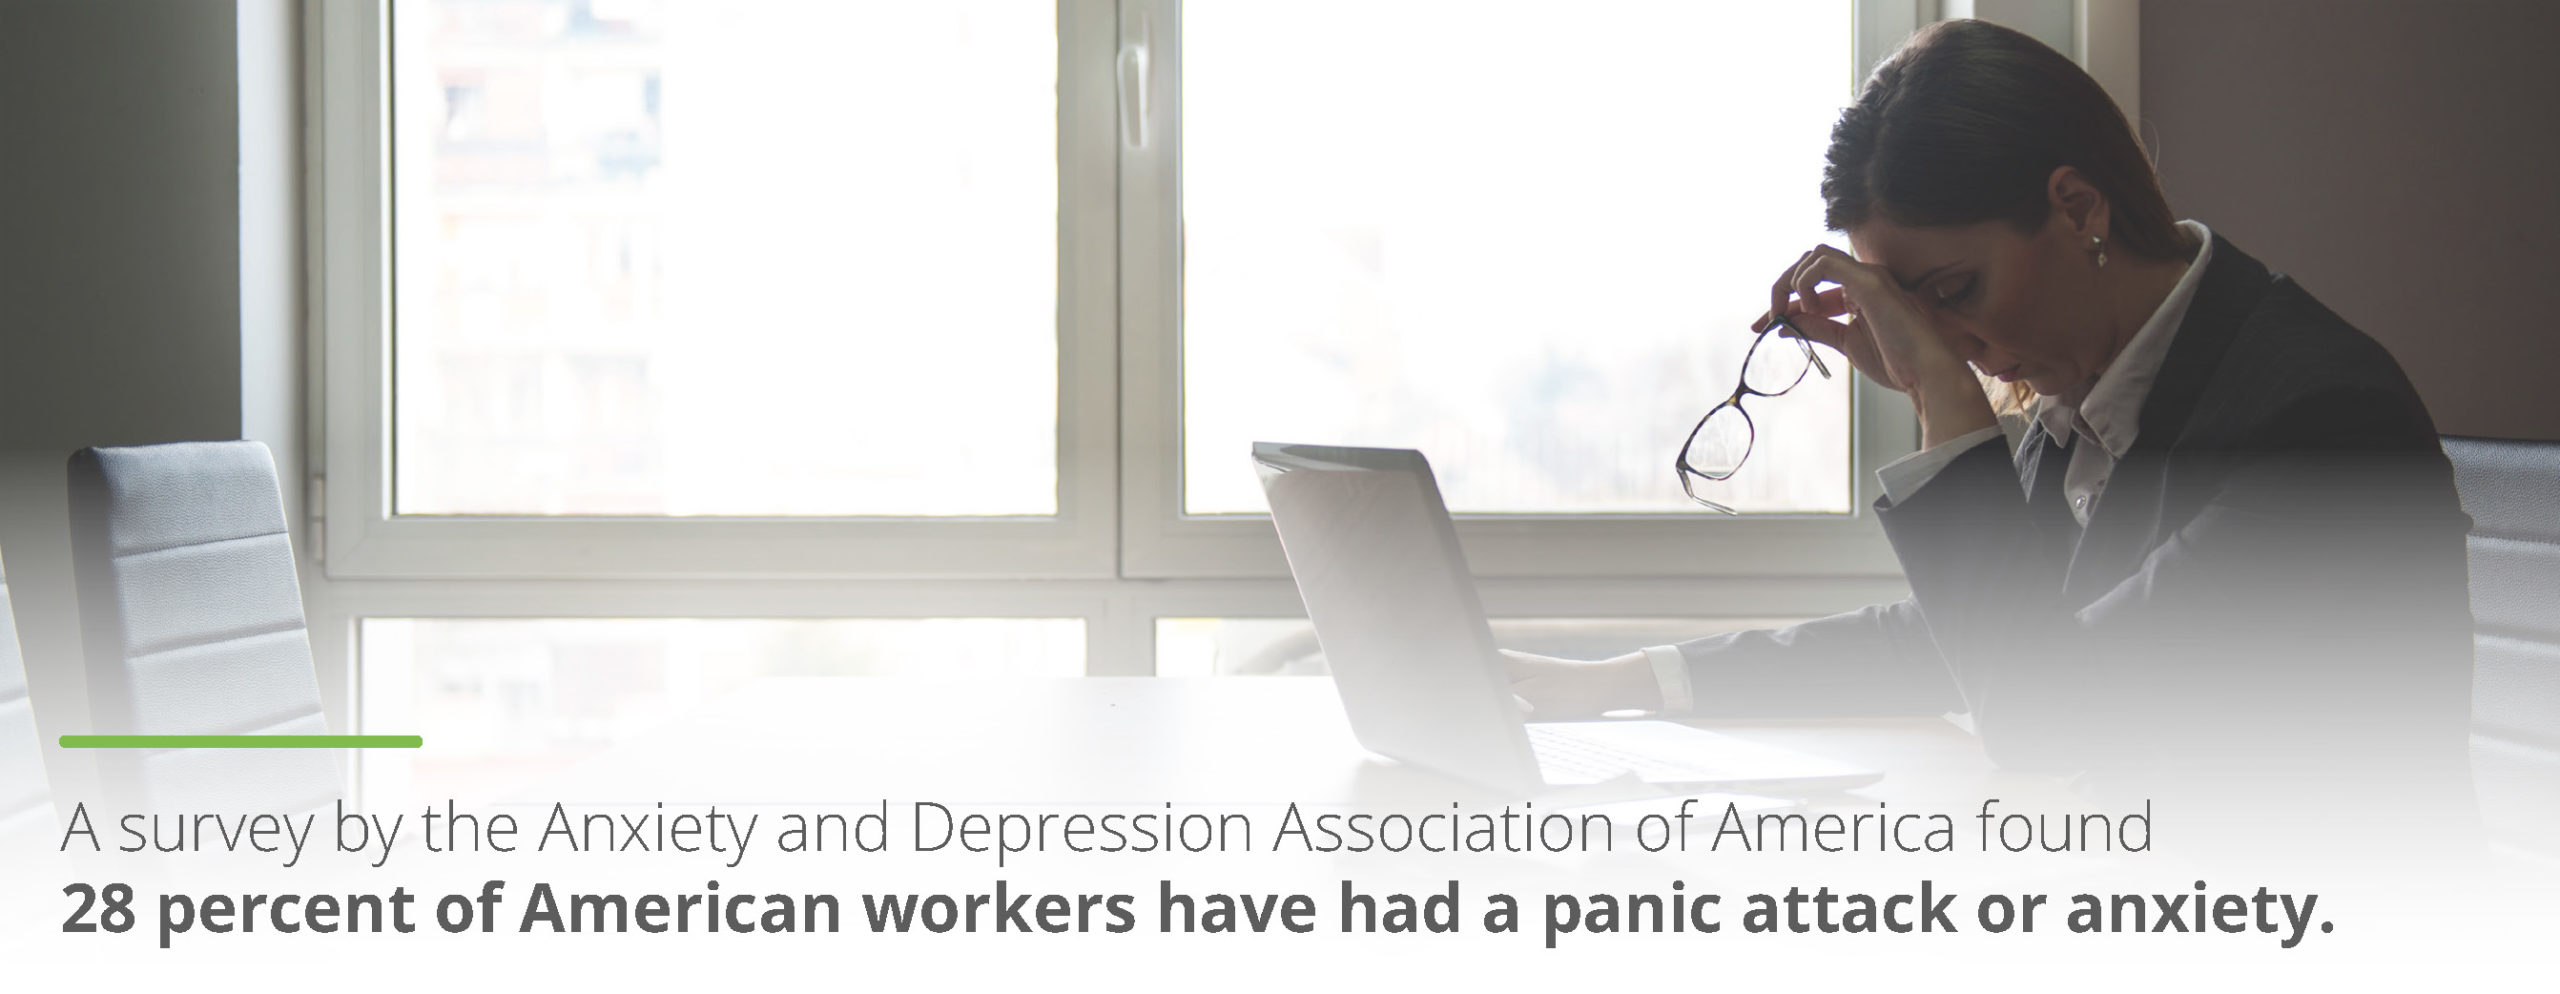 28% of American workers have had a panic attack or anxiety